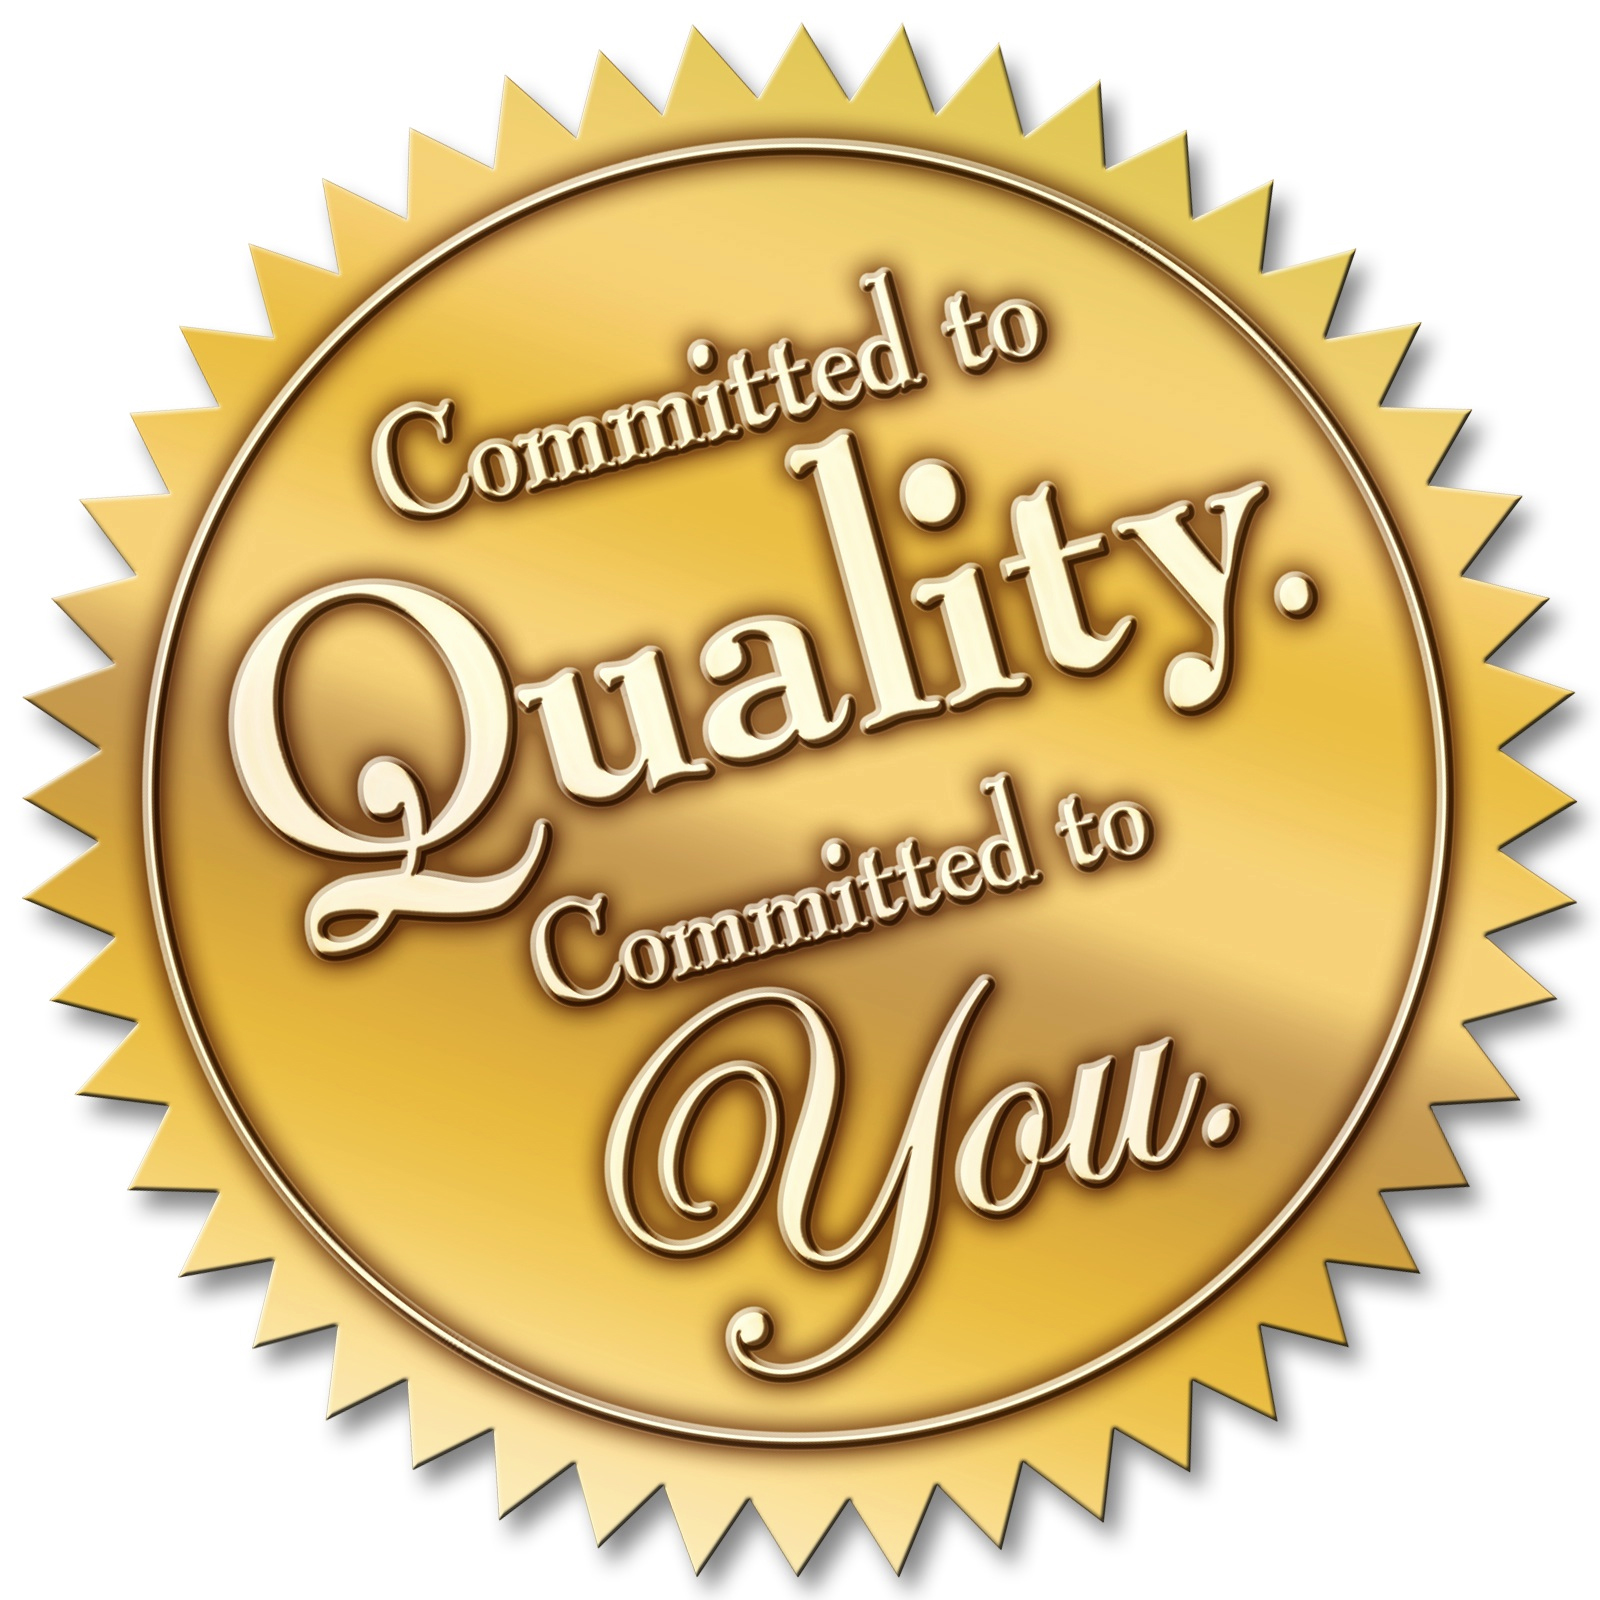 Brand message: Quality is … ?